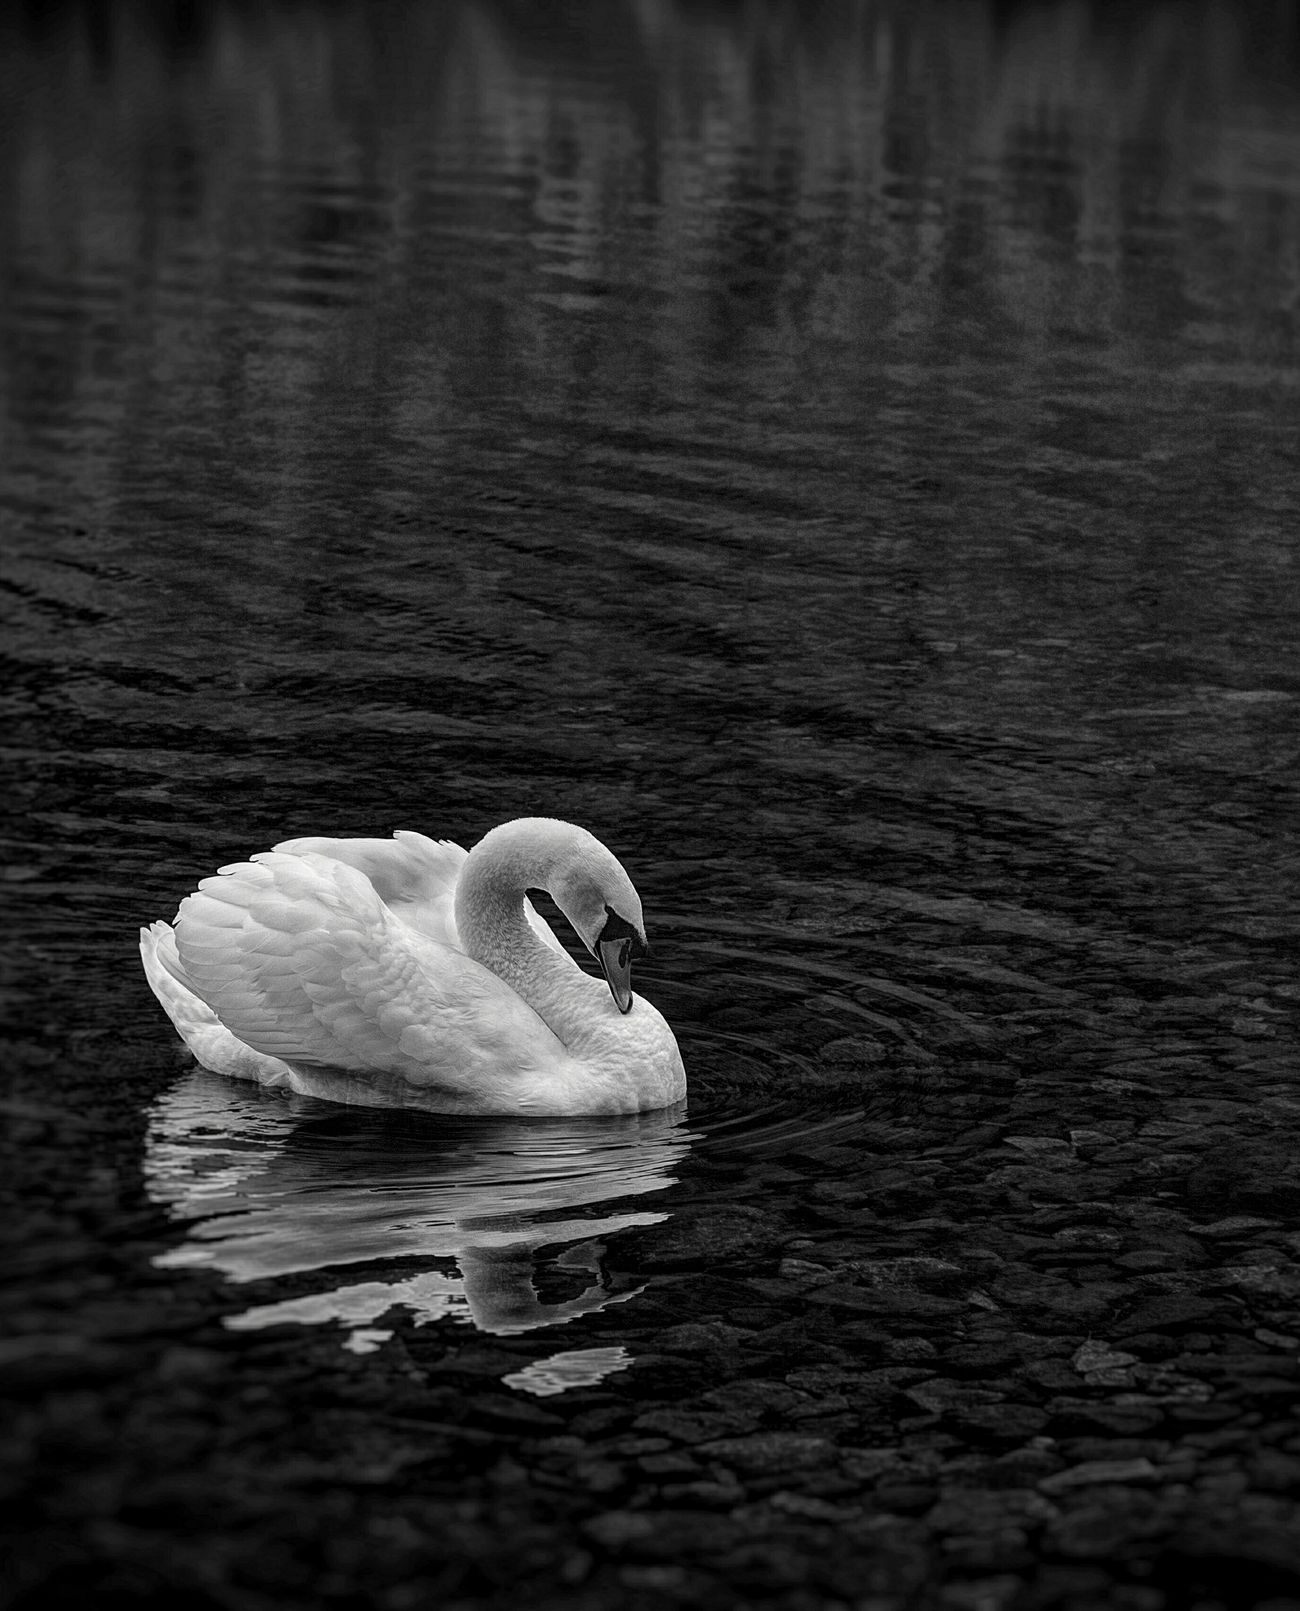 Simplicity EyeEmBestShots-Reflections EyeEm Best Shots - Nature Black And White Swan